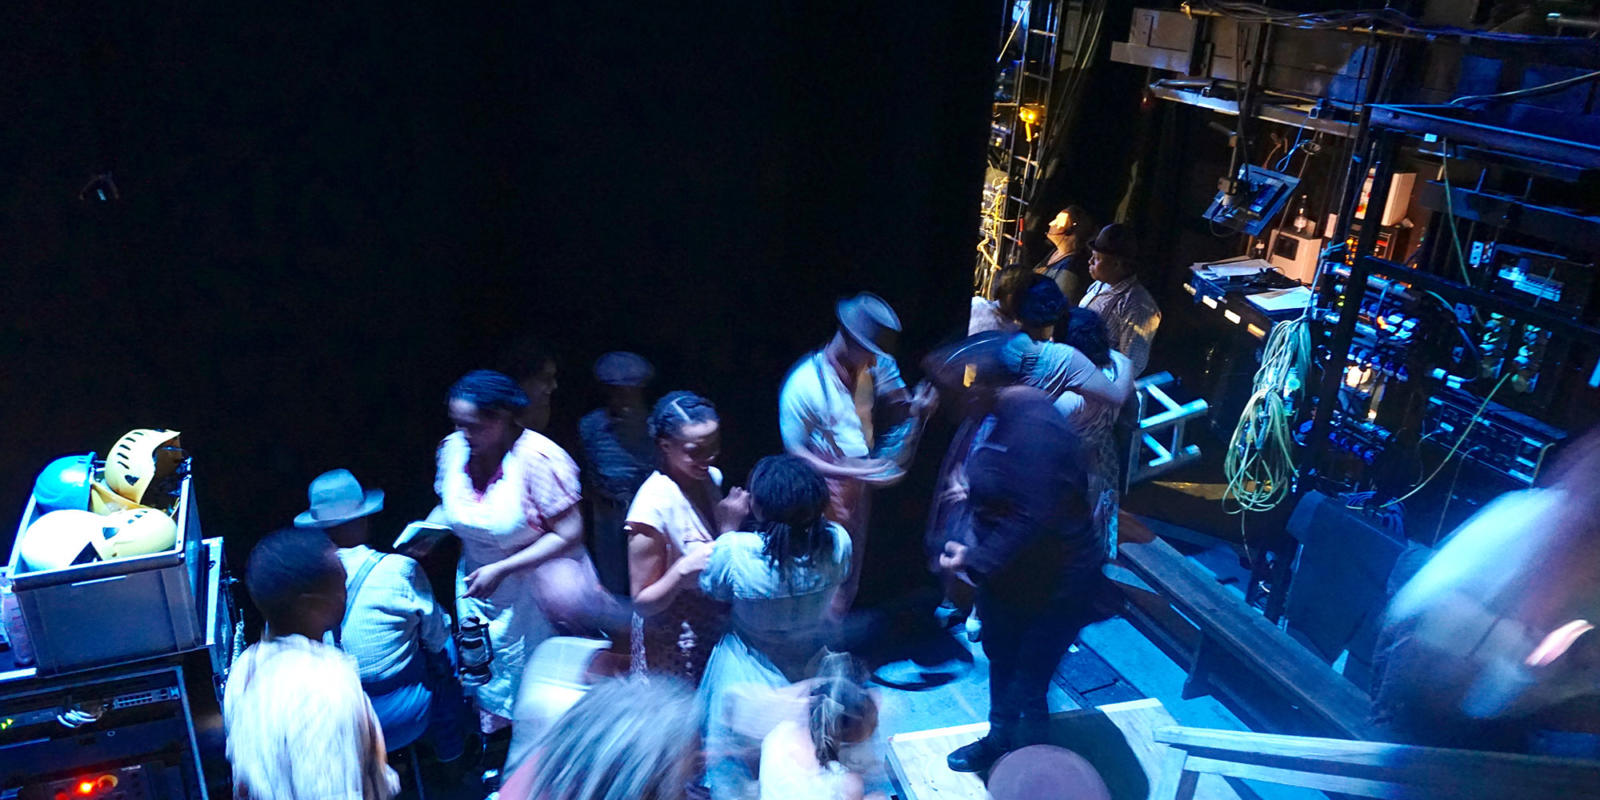 ENO Porgy and Bess: Members of the ensemble wait to go on stage for the thunderstorm scene